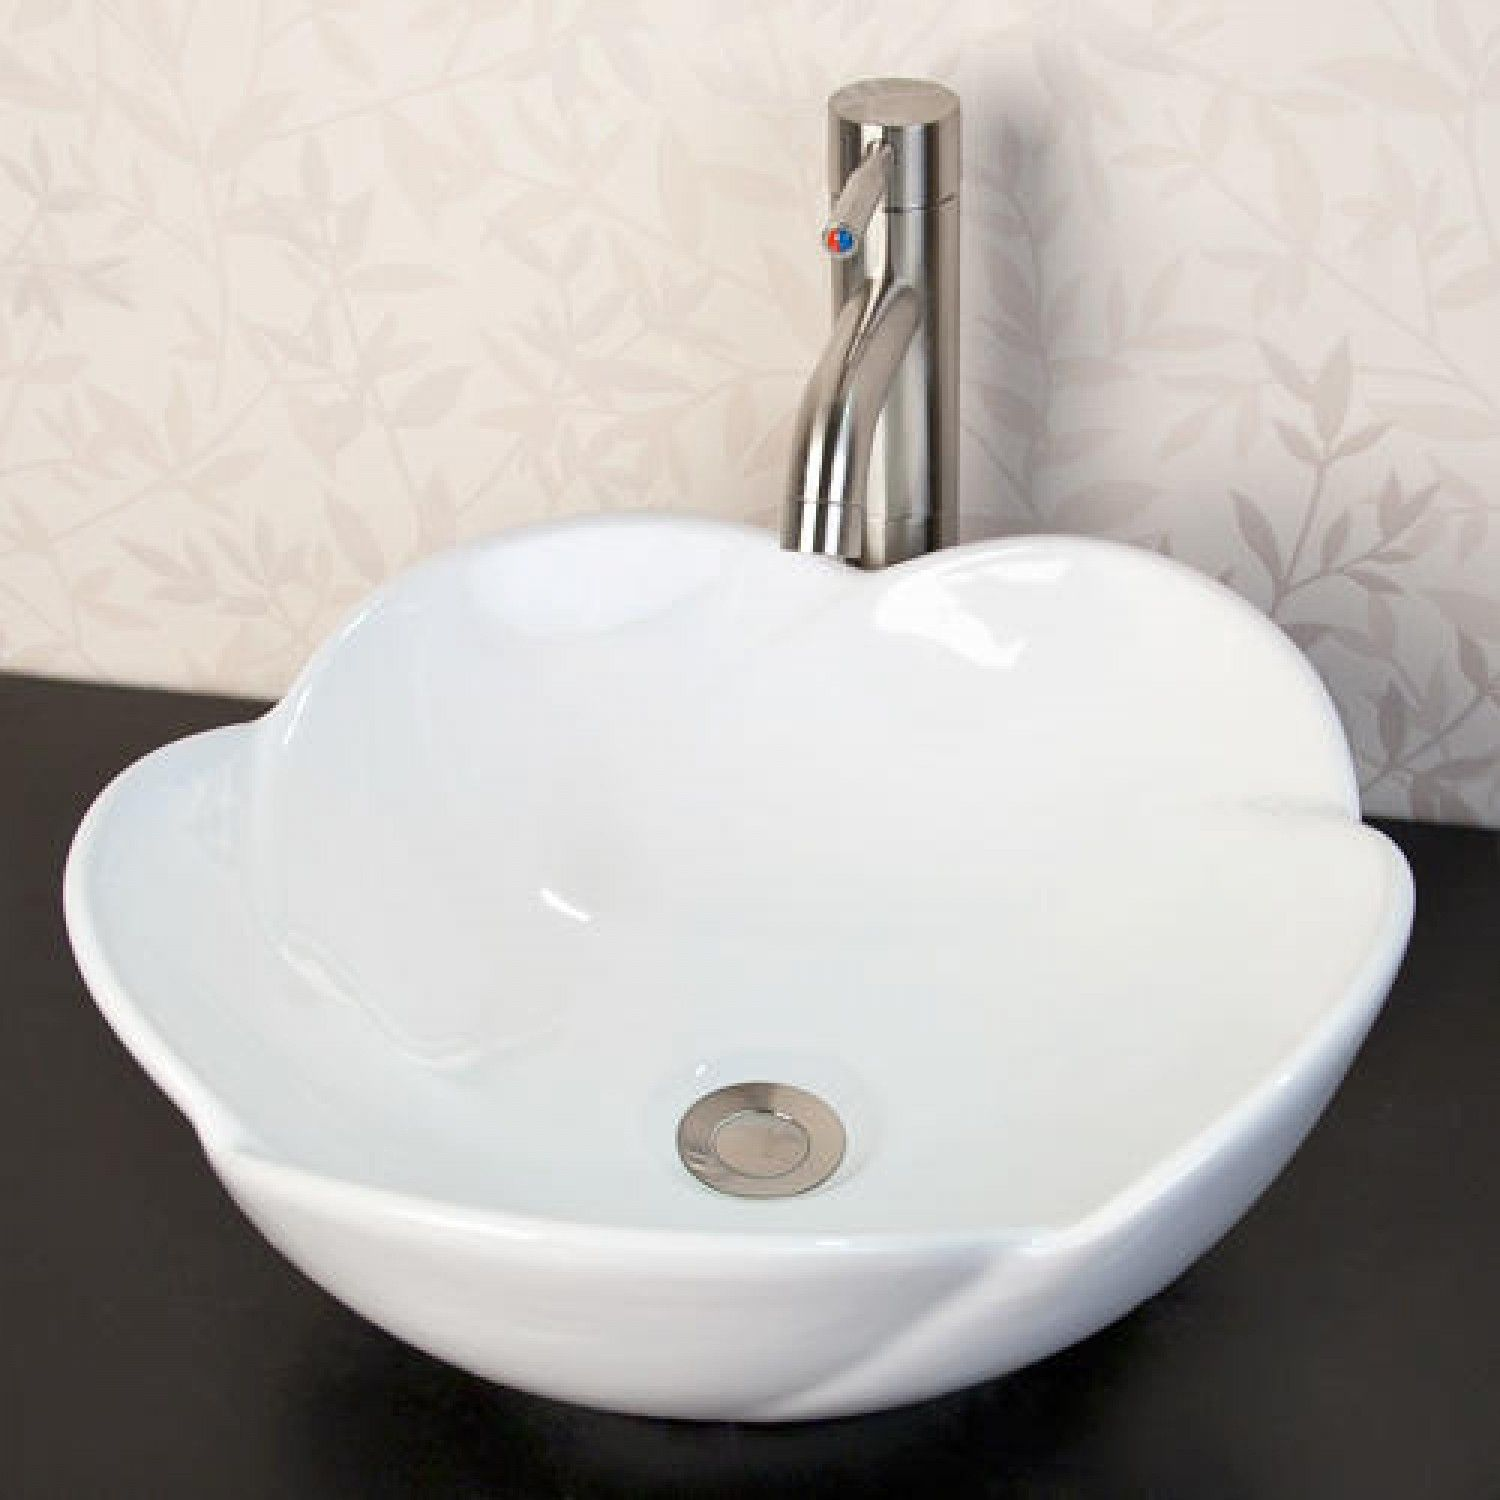 Bathroom Furniture, Fixtures and Decor. Vessel Sink ...